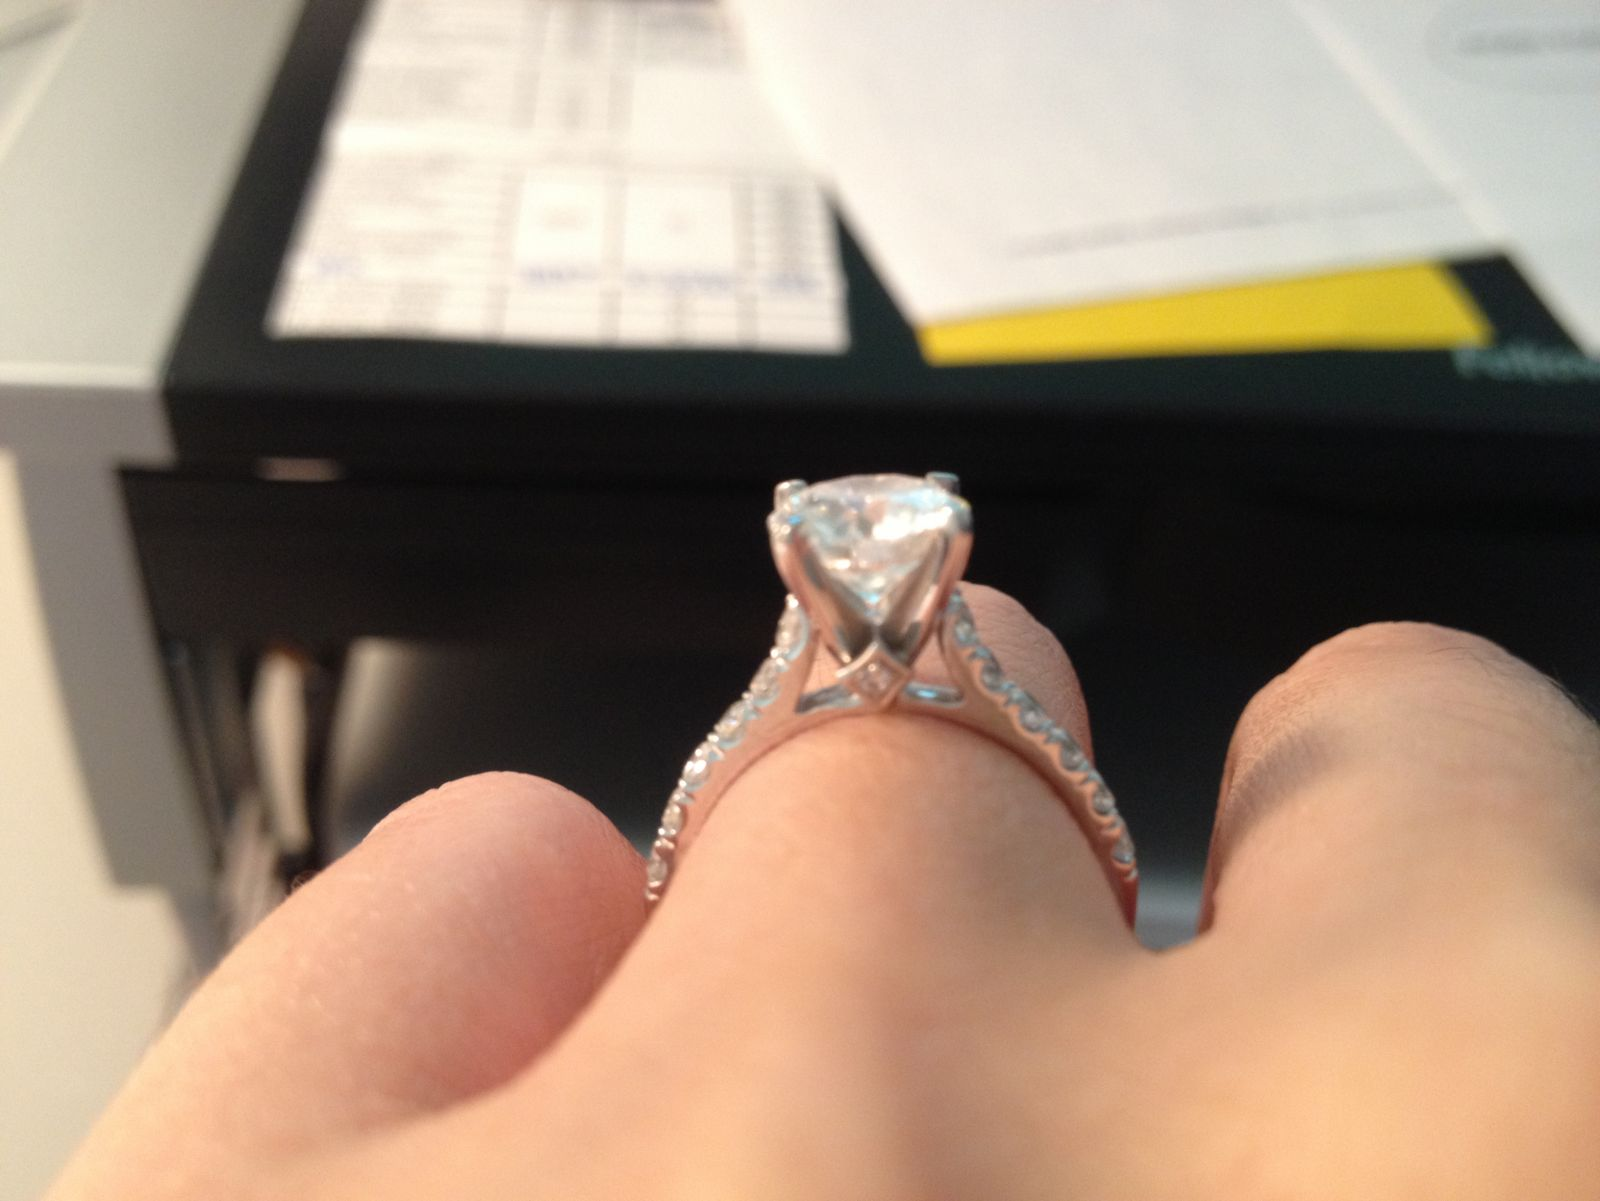 show us your rings!